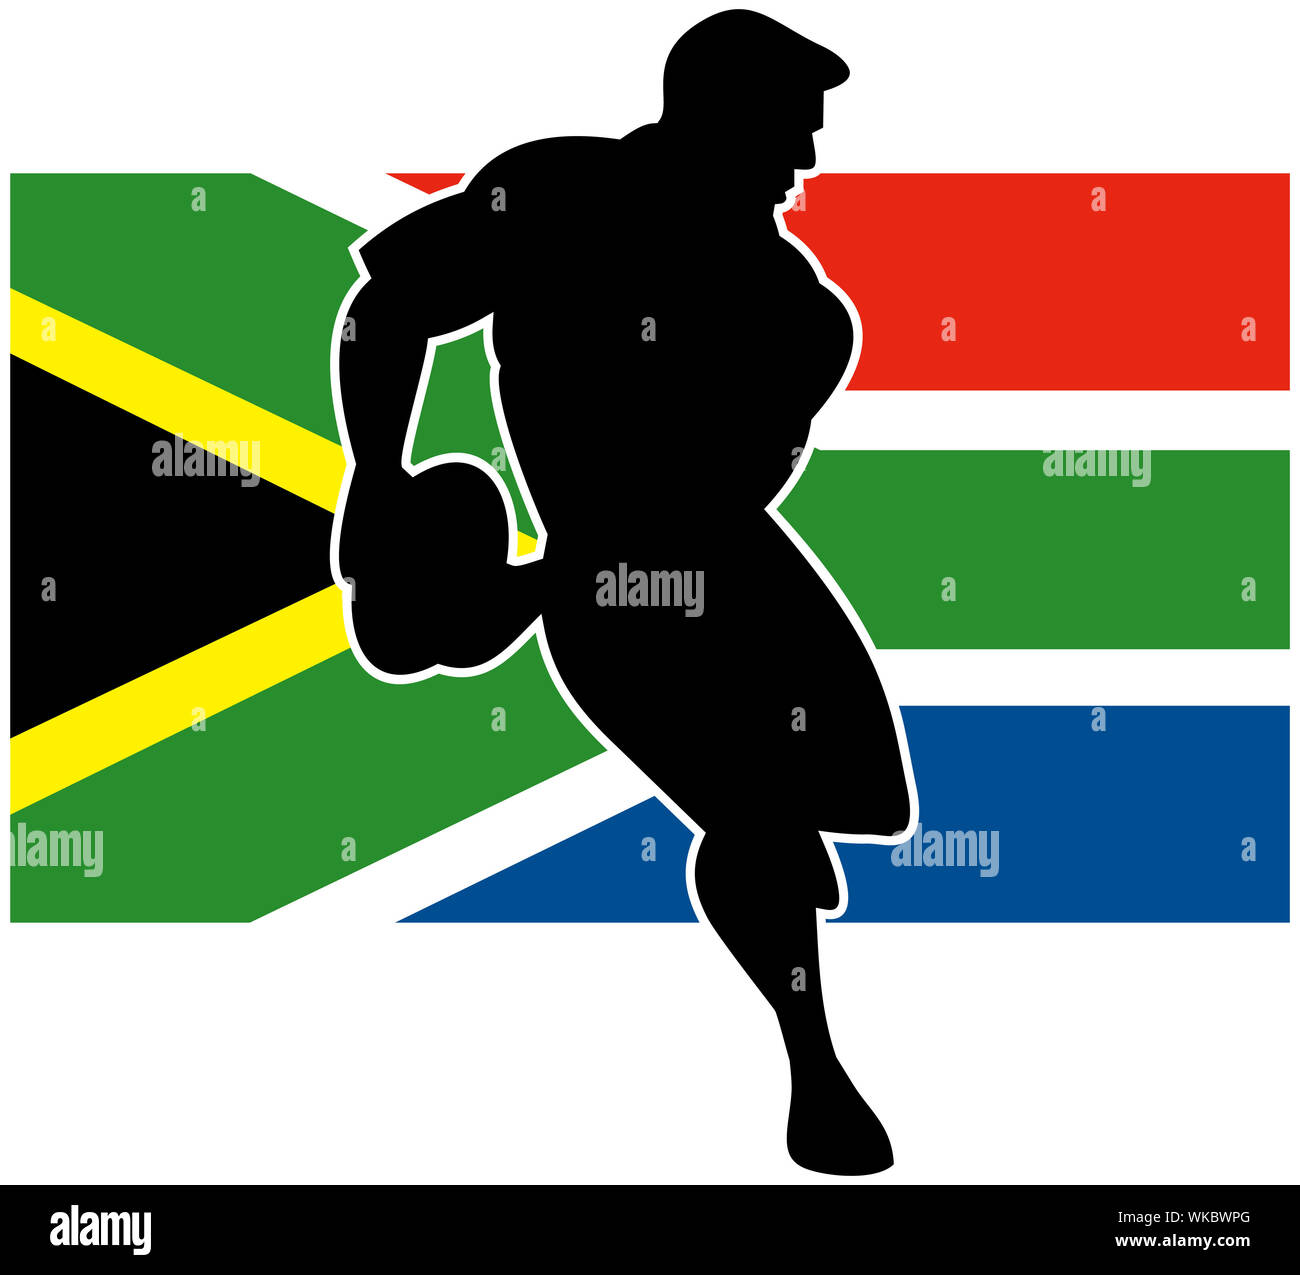 Illustration of a rugby player running passing ball with flag of South Africa in background Stock Photo